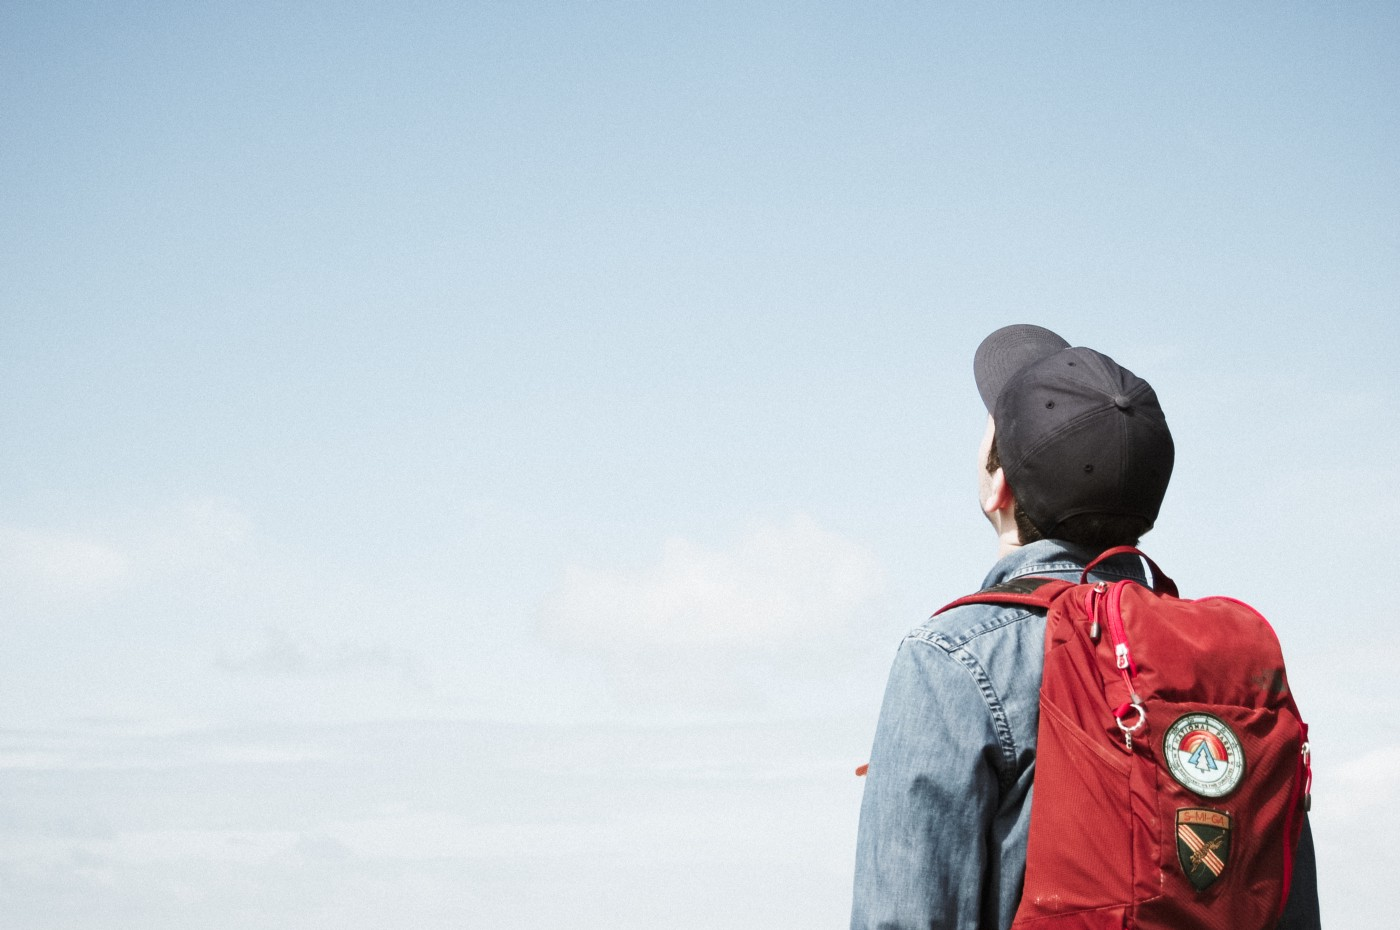 Person looking at the sky, holding a backpack